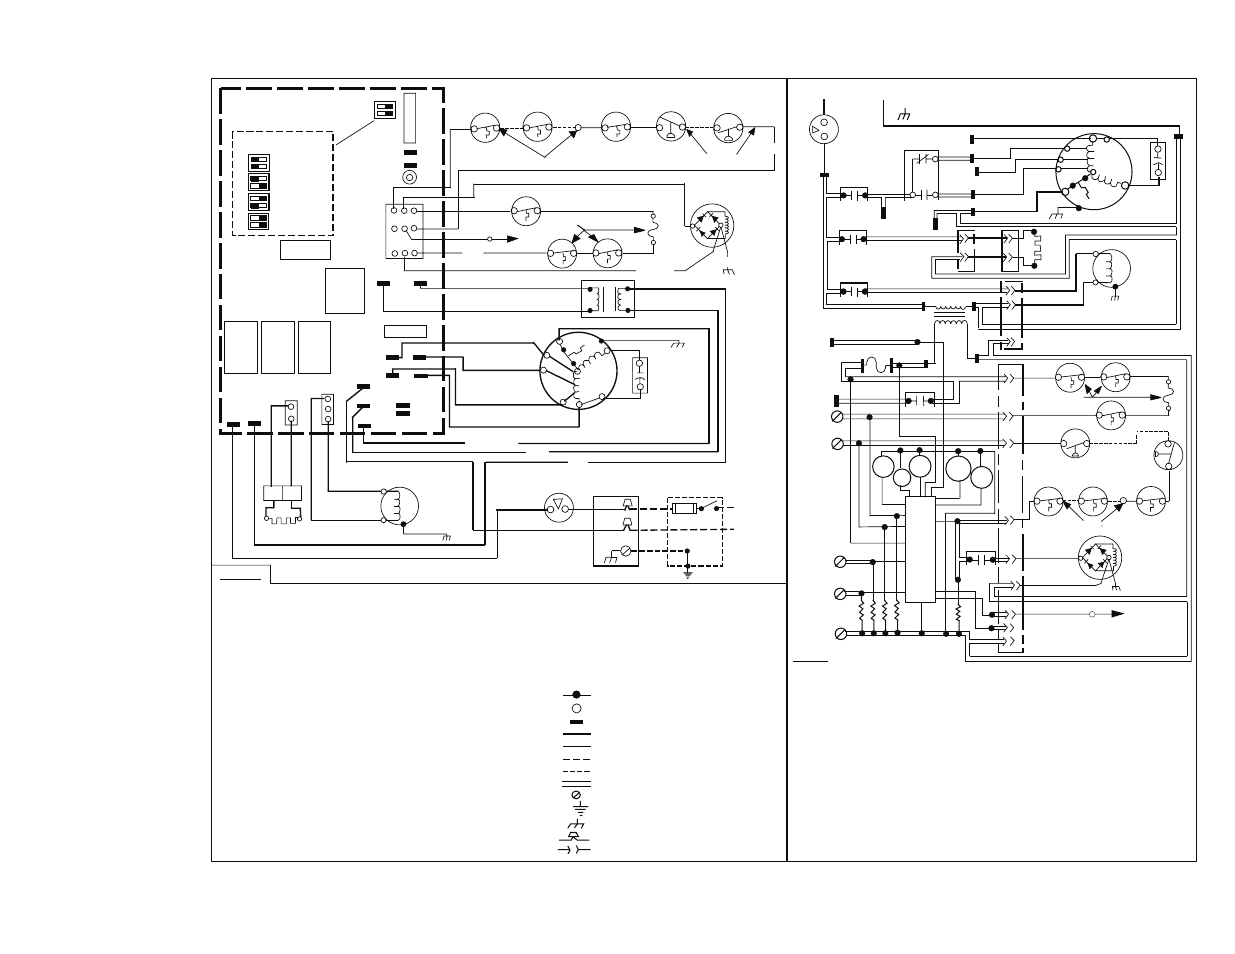 gas fired furnace wiring diagram gas image wiring fig 12 u2014furnace wiring diagram bryant gas fired induced on gas fired furnace wiring diagram